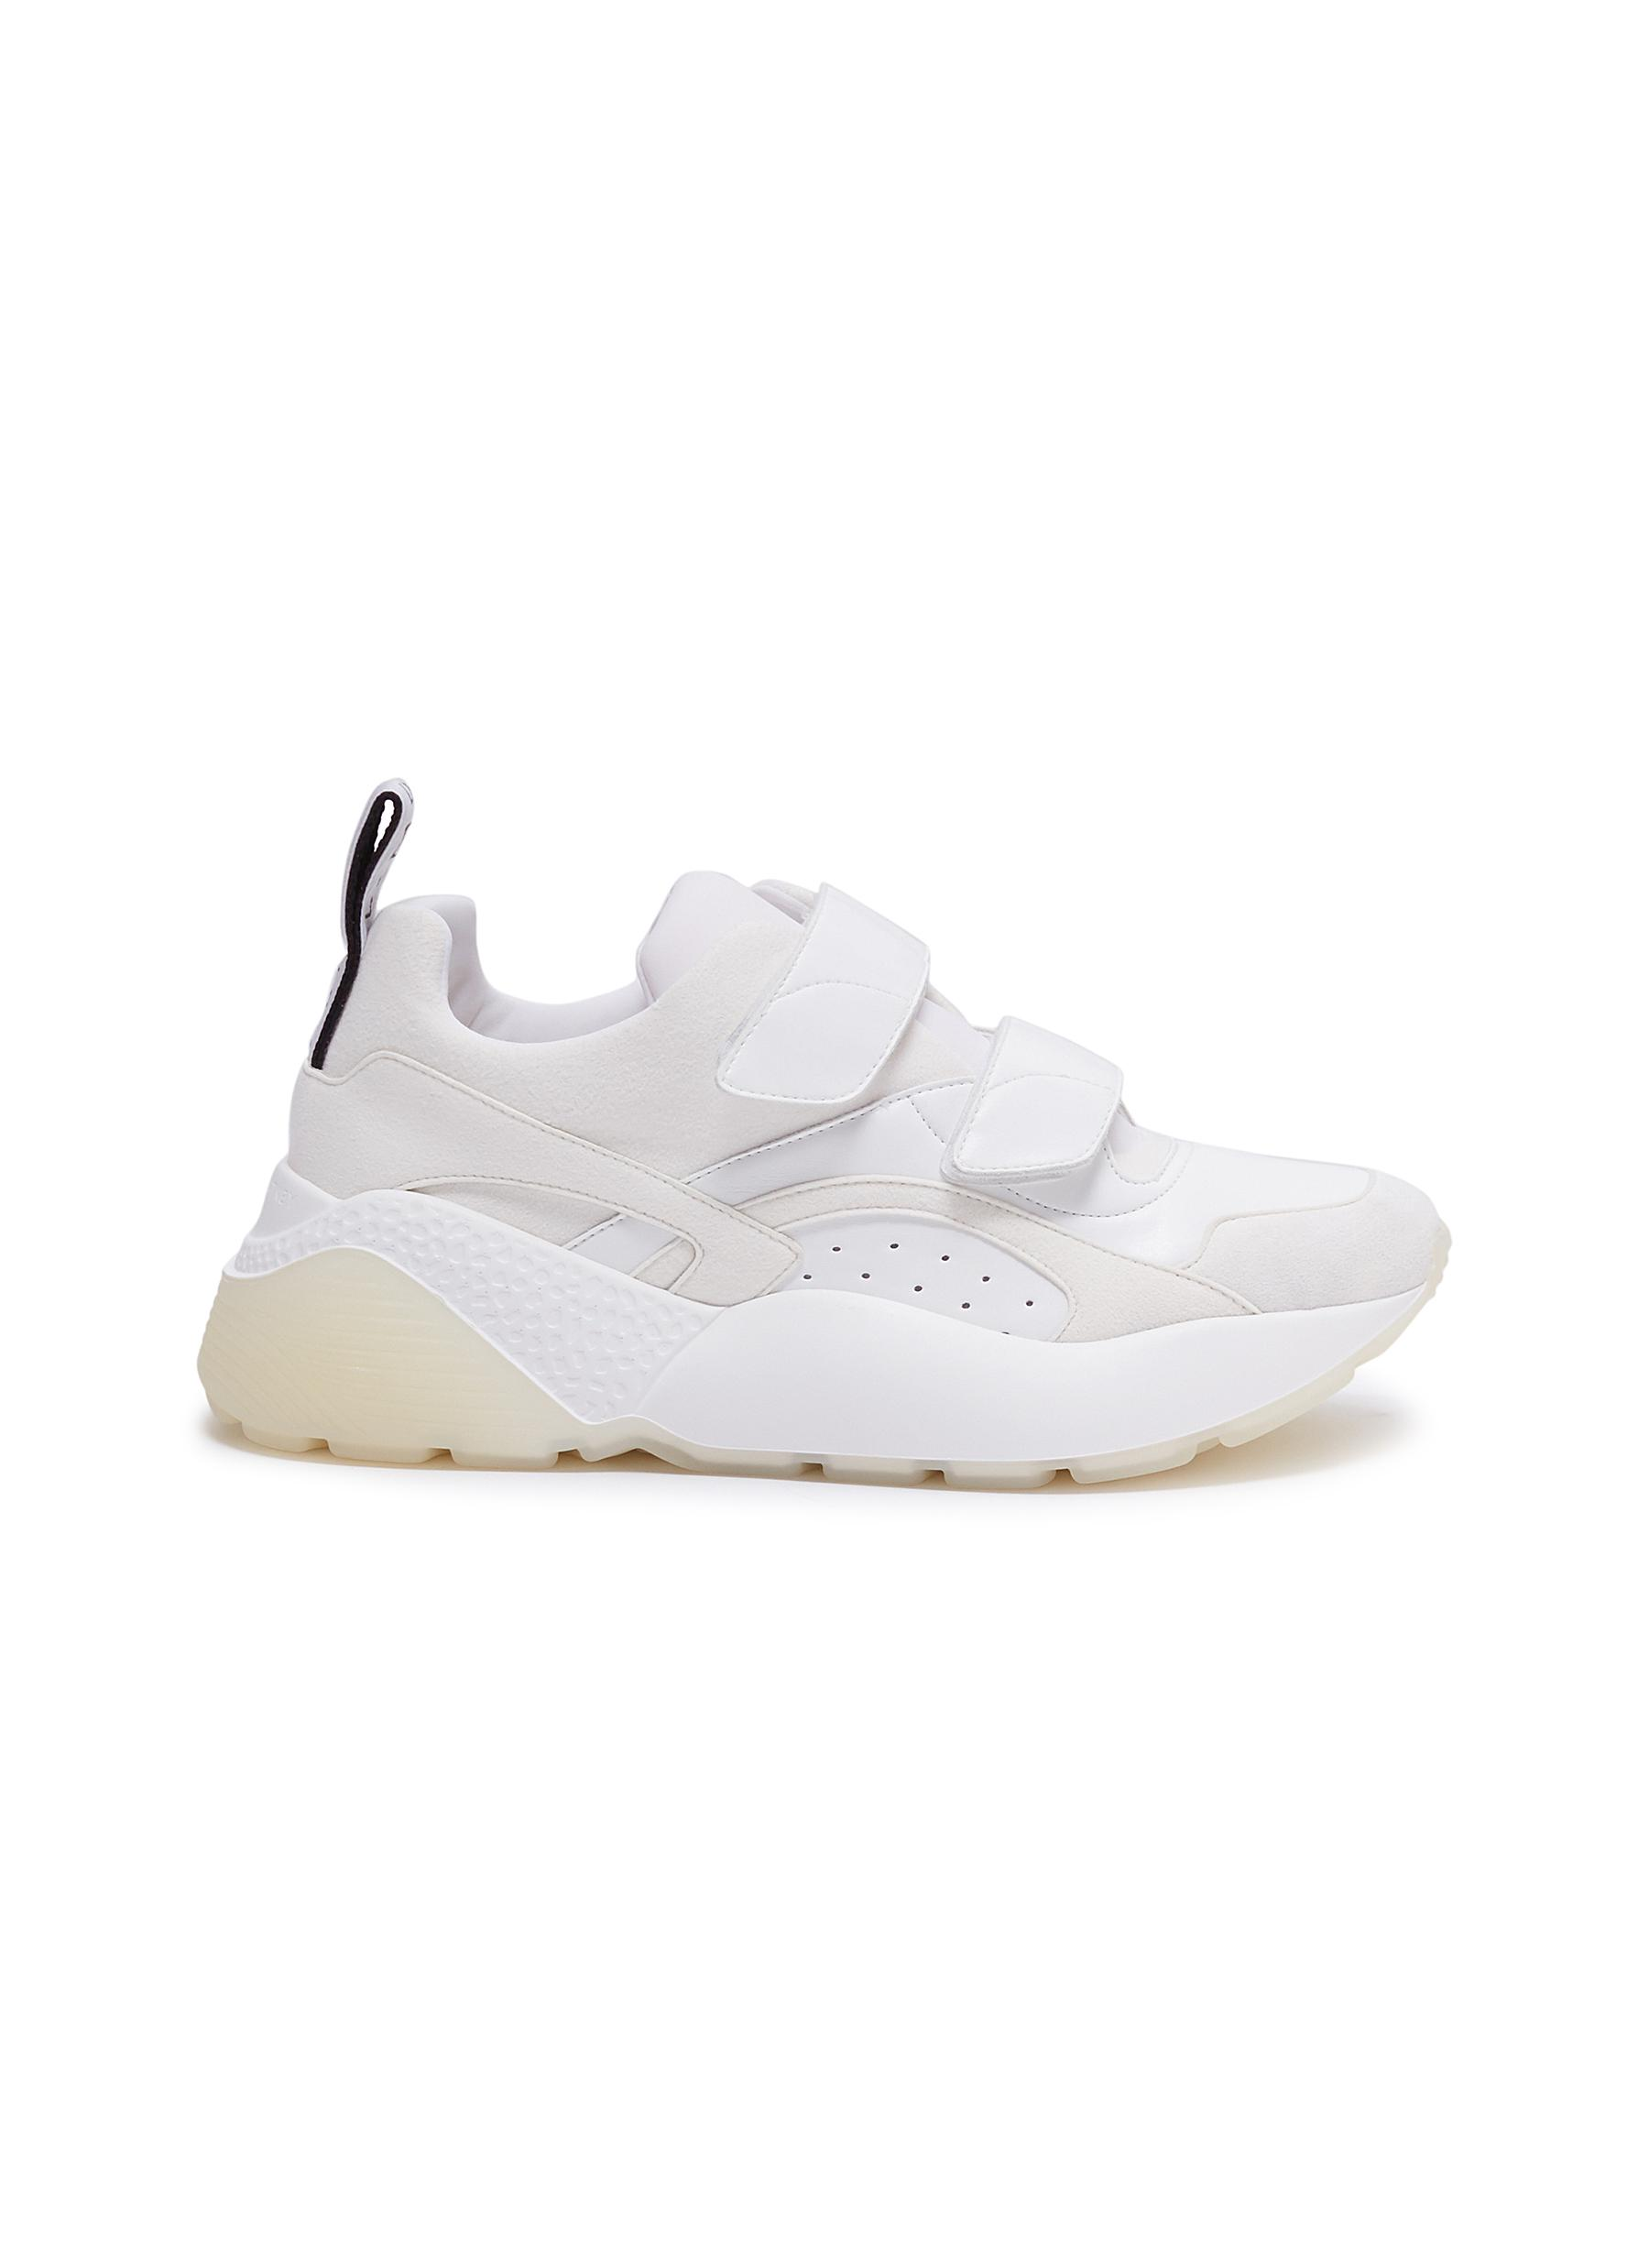 Eclypse faux leather and suede sneakers by Stella Mccartney